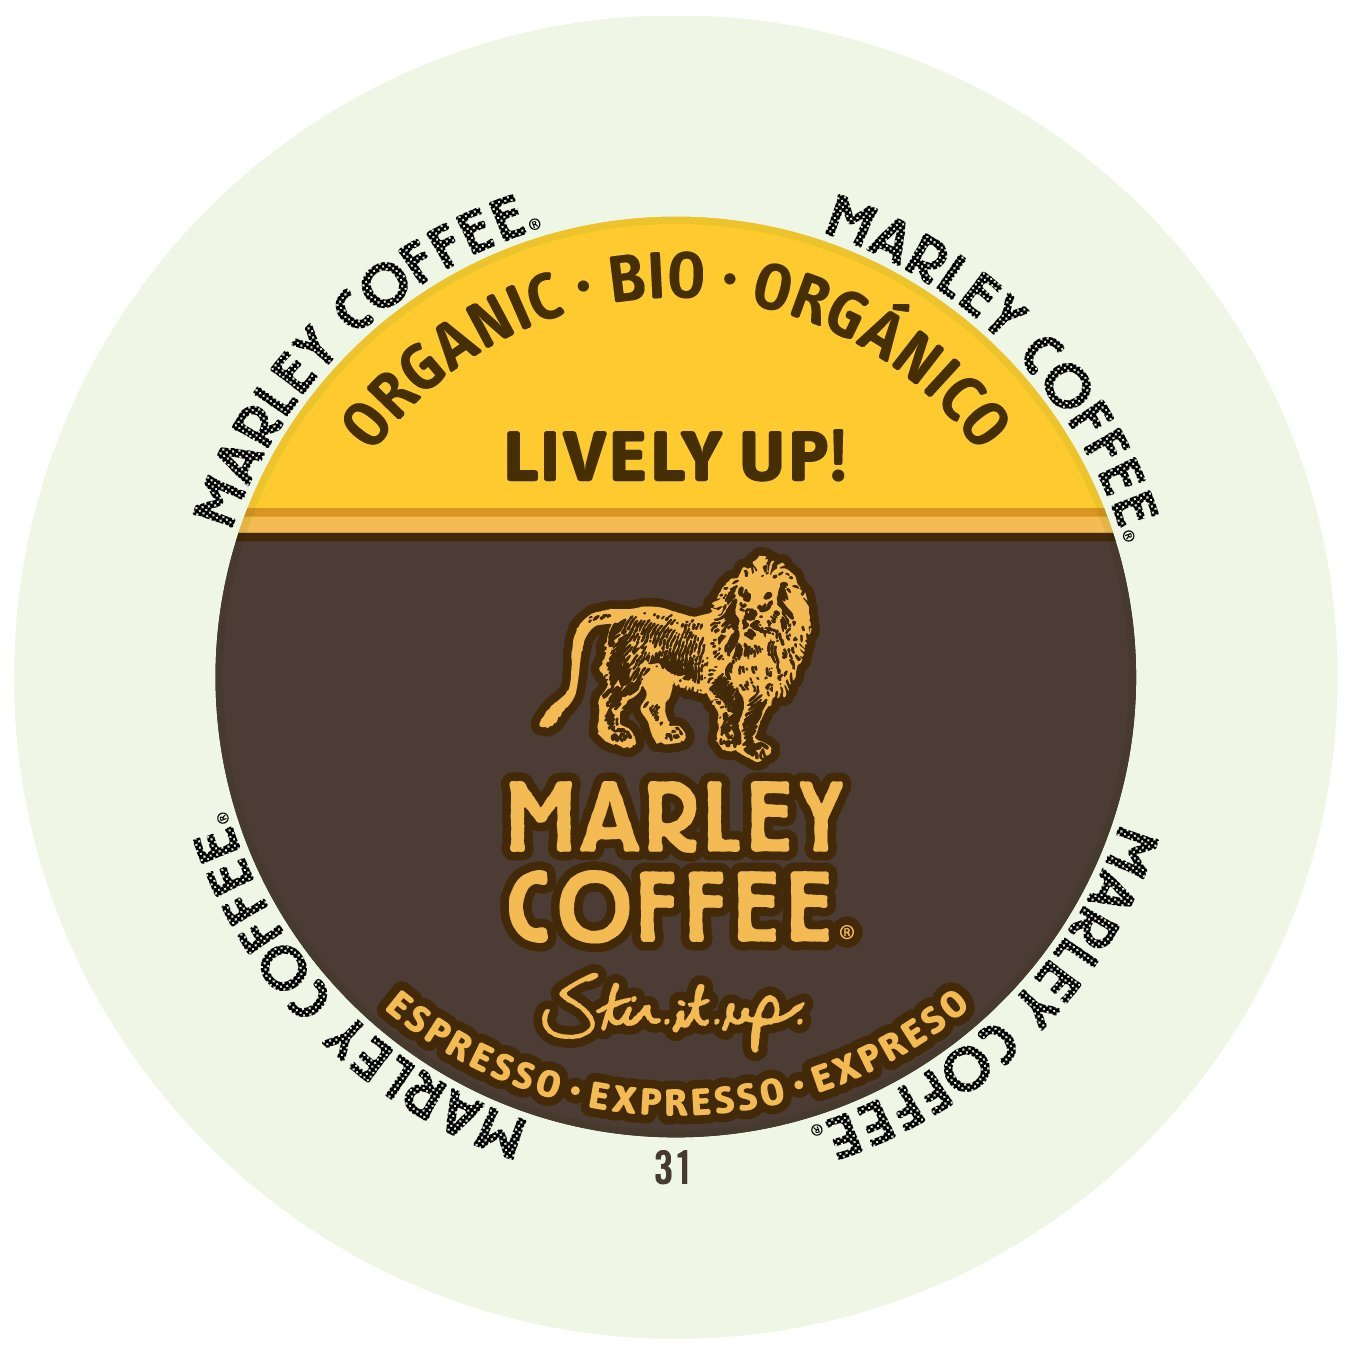 Marley Coffee Lively Up Espresso Dark Organic, RealCup portion pack for Keurig K-Cup Brewers, 96 Count